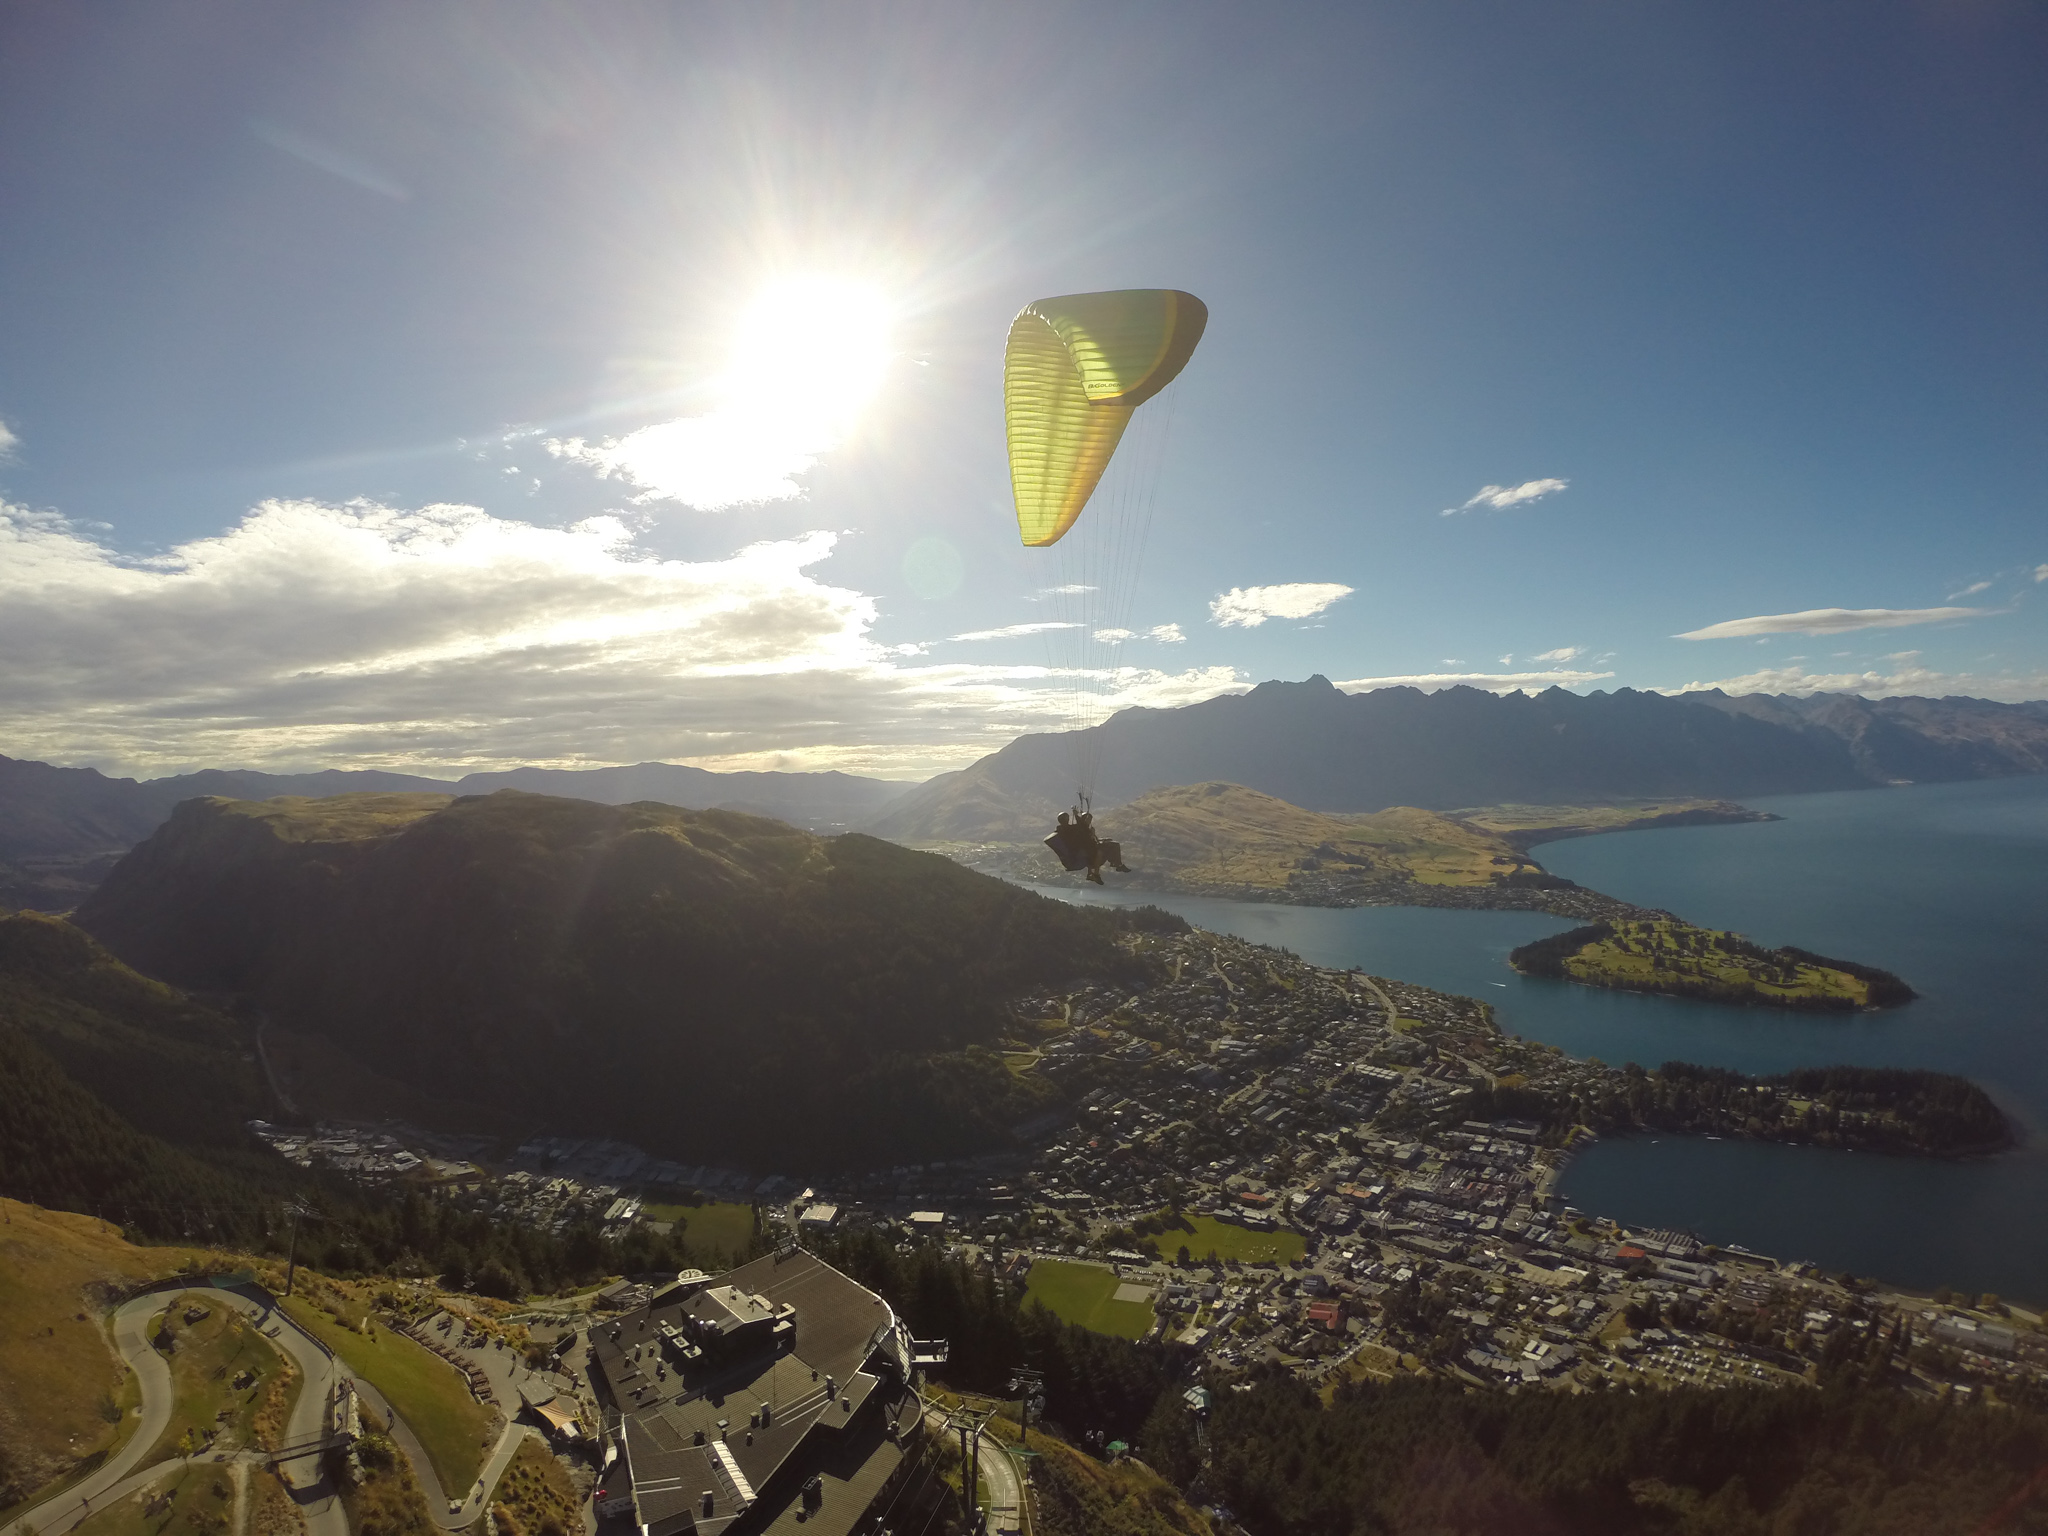 Paragliding in Queenstown with G Force Paragliding